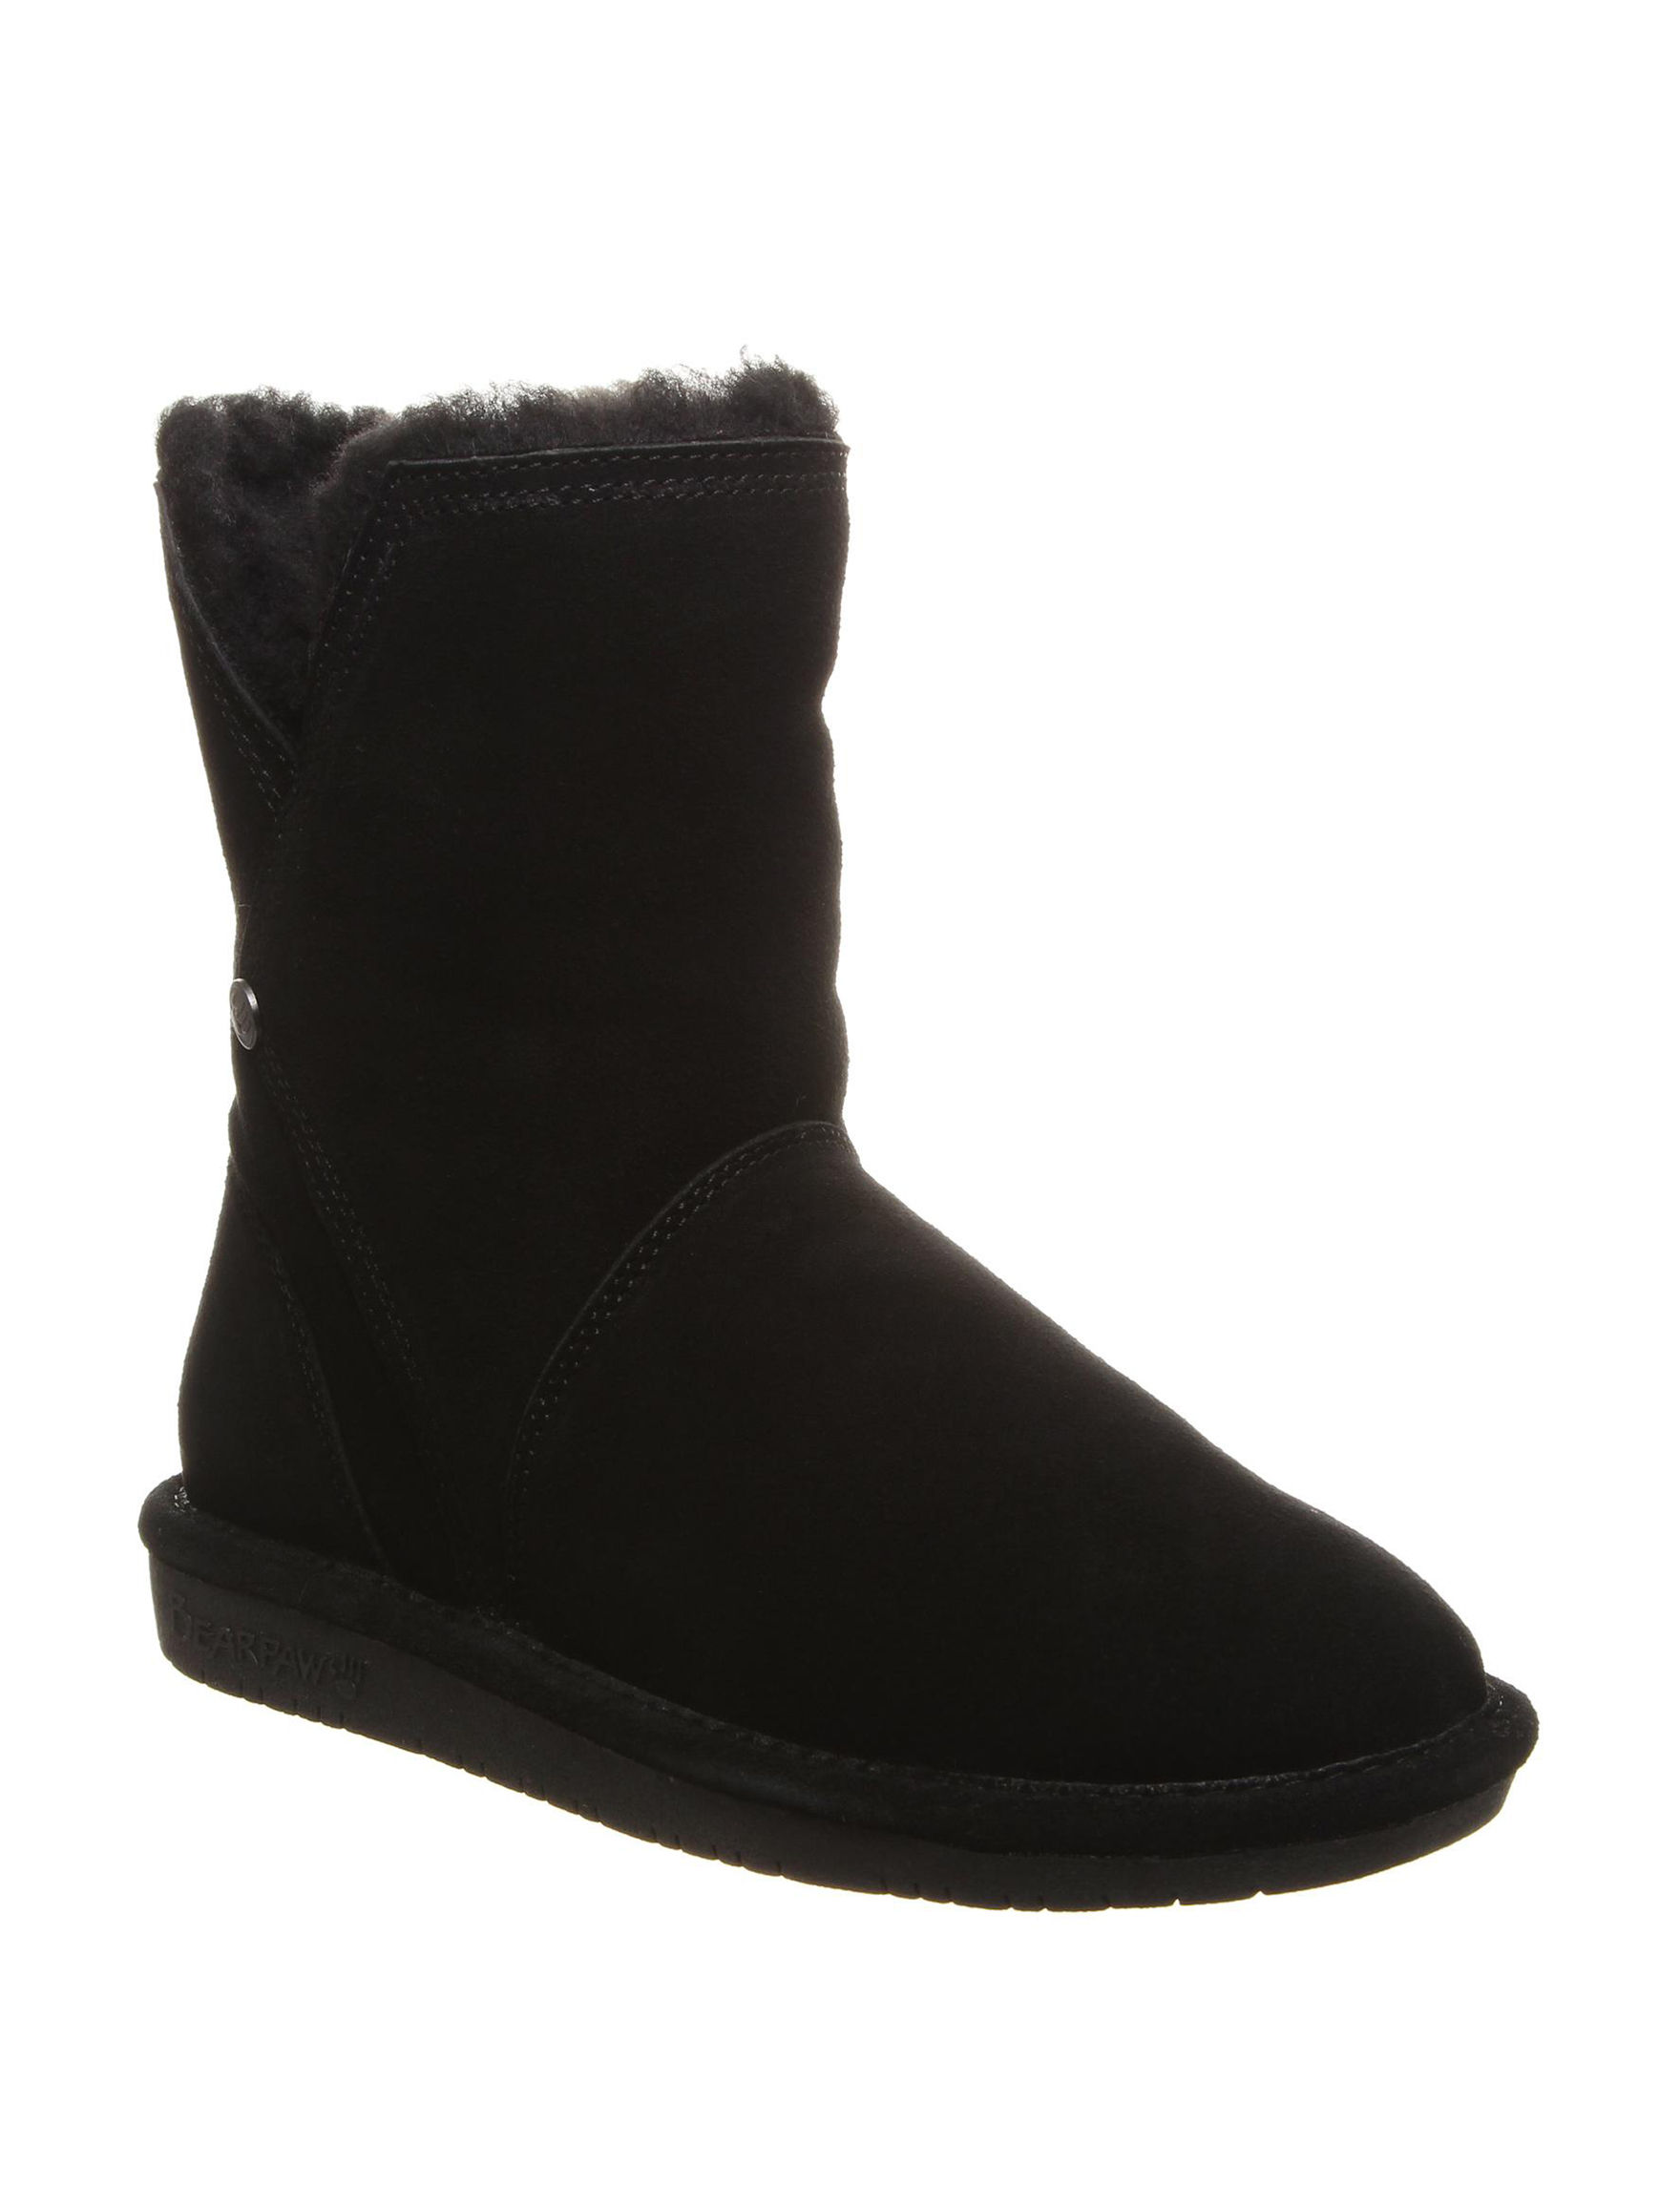 Bearpaw Chocolate Brown Comfort Shoes Winter Boots